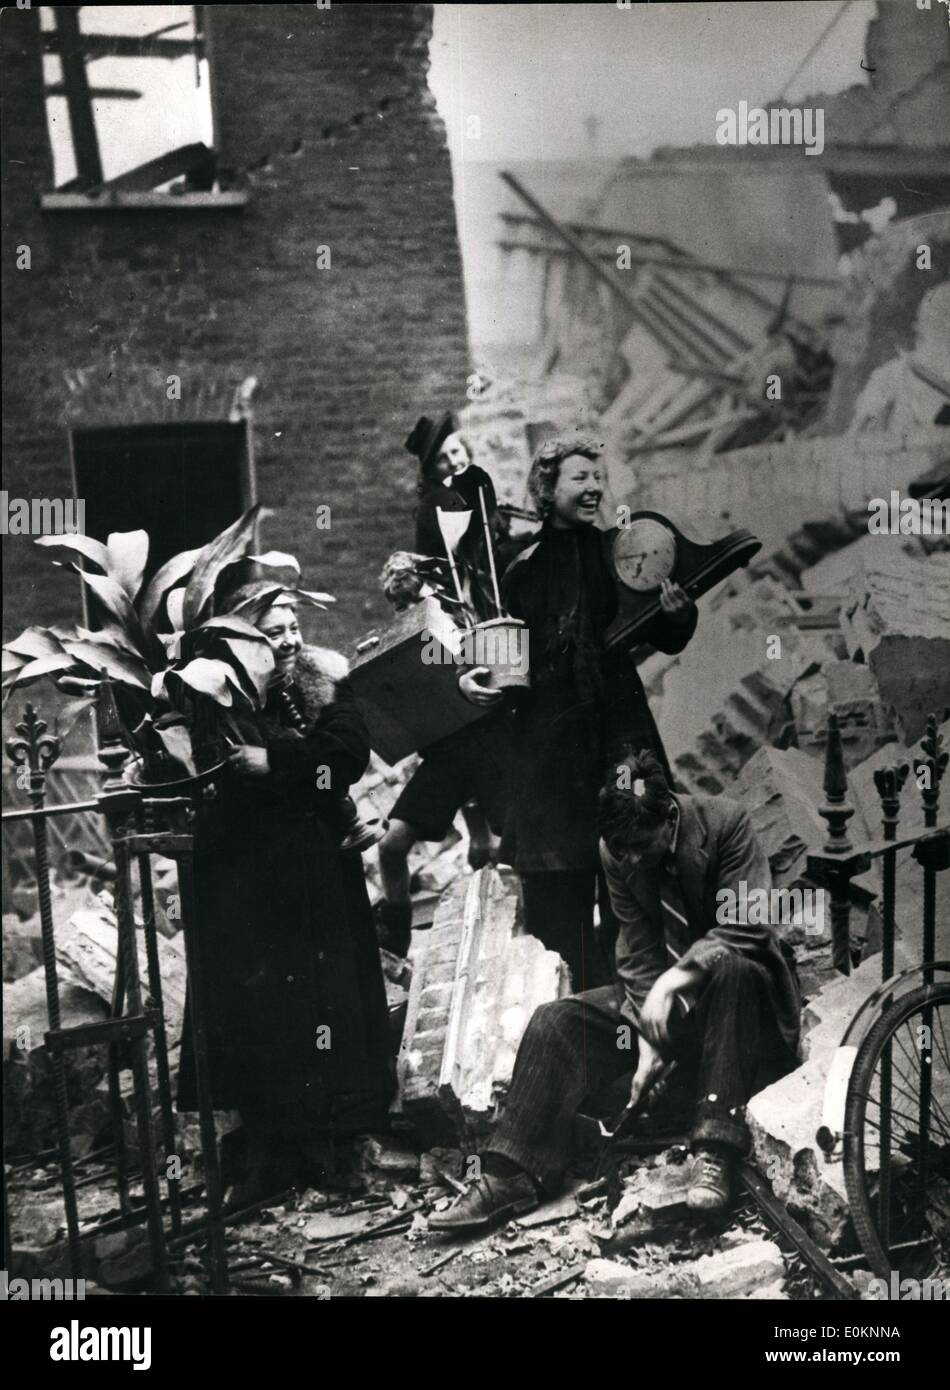 Sep. 09, 1940 - Salvage Time In London: Prized Family heirlooms, the asp Idestra. It was not forgotten when the house was bombed and the most valued possession Were salvaged. - Stock Image